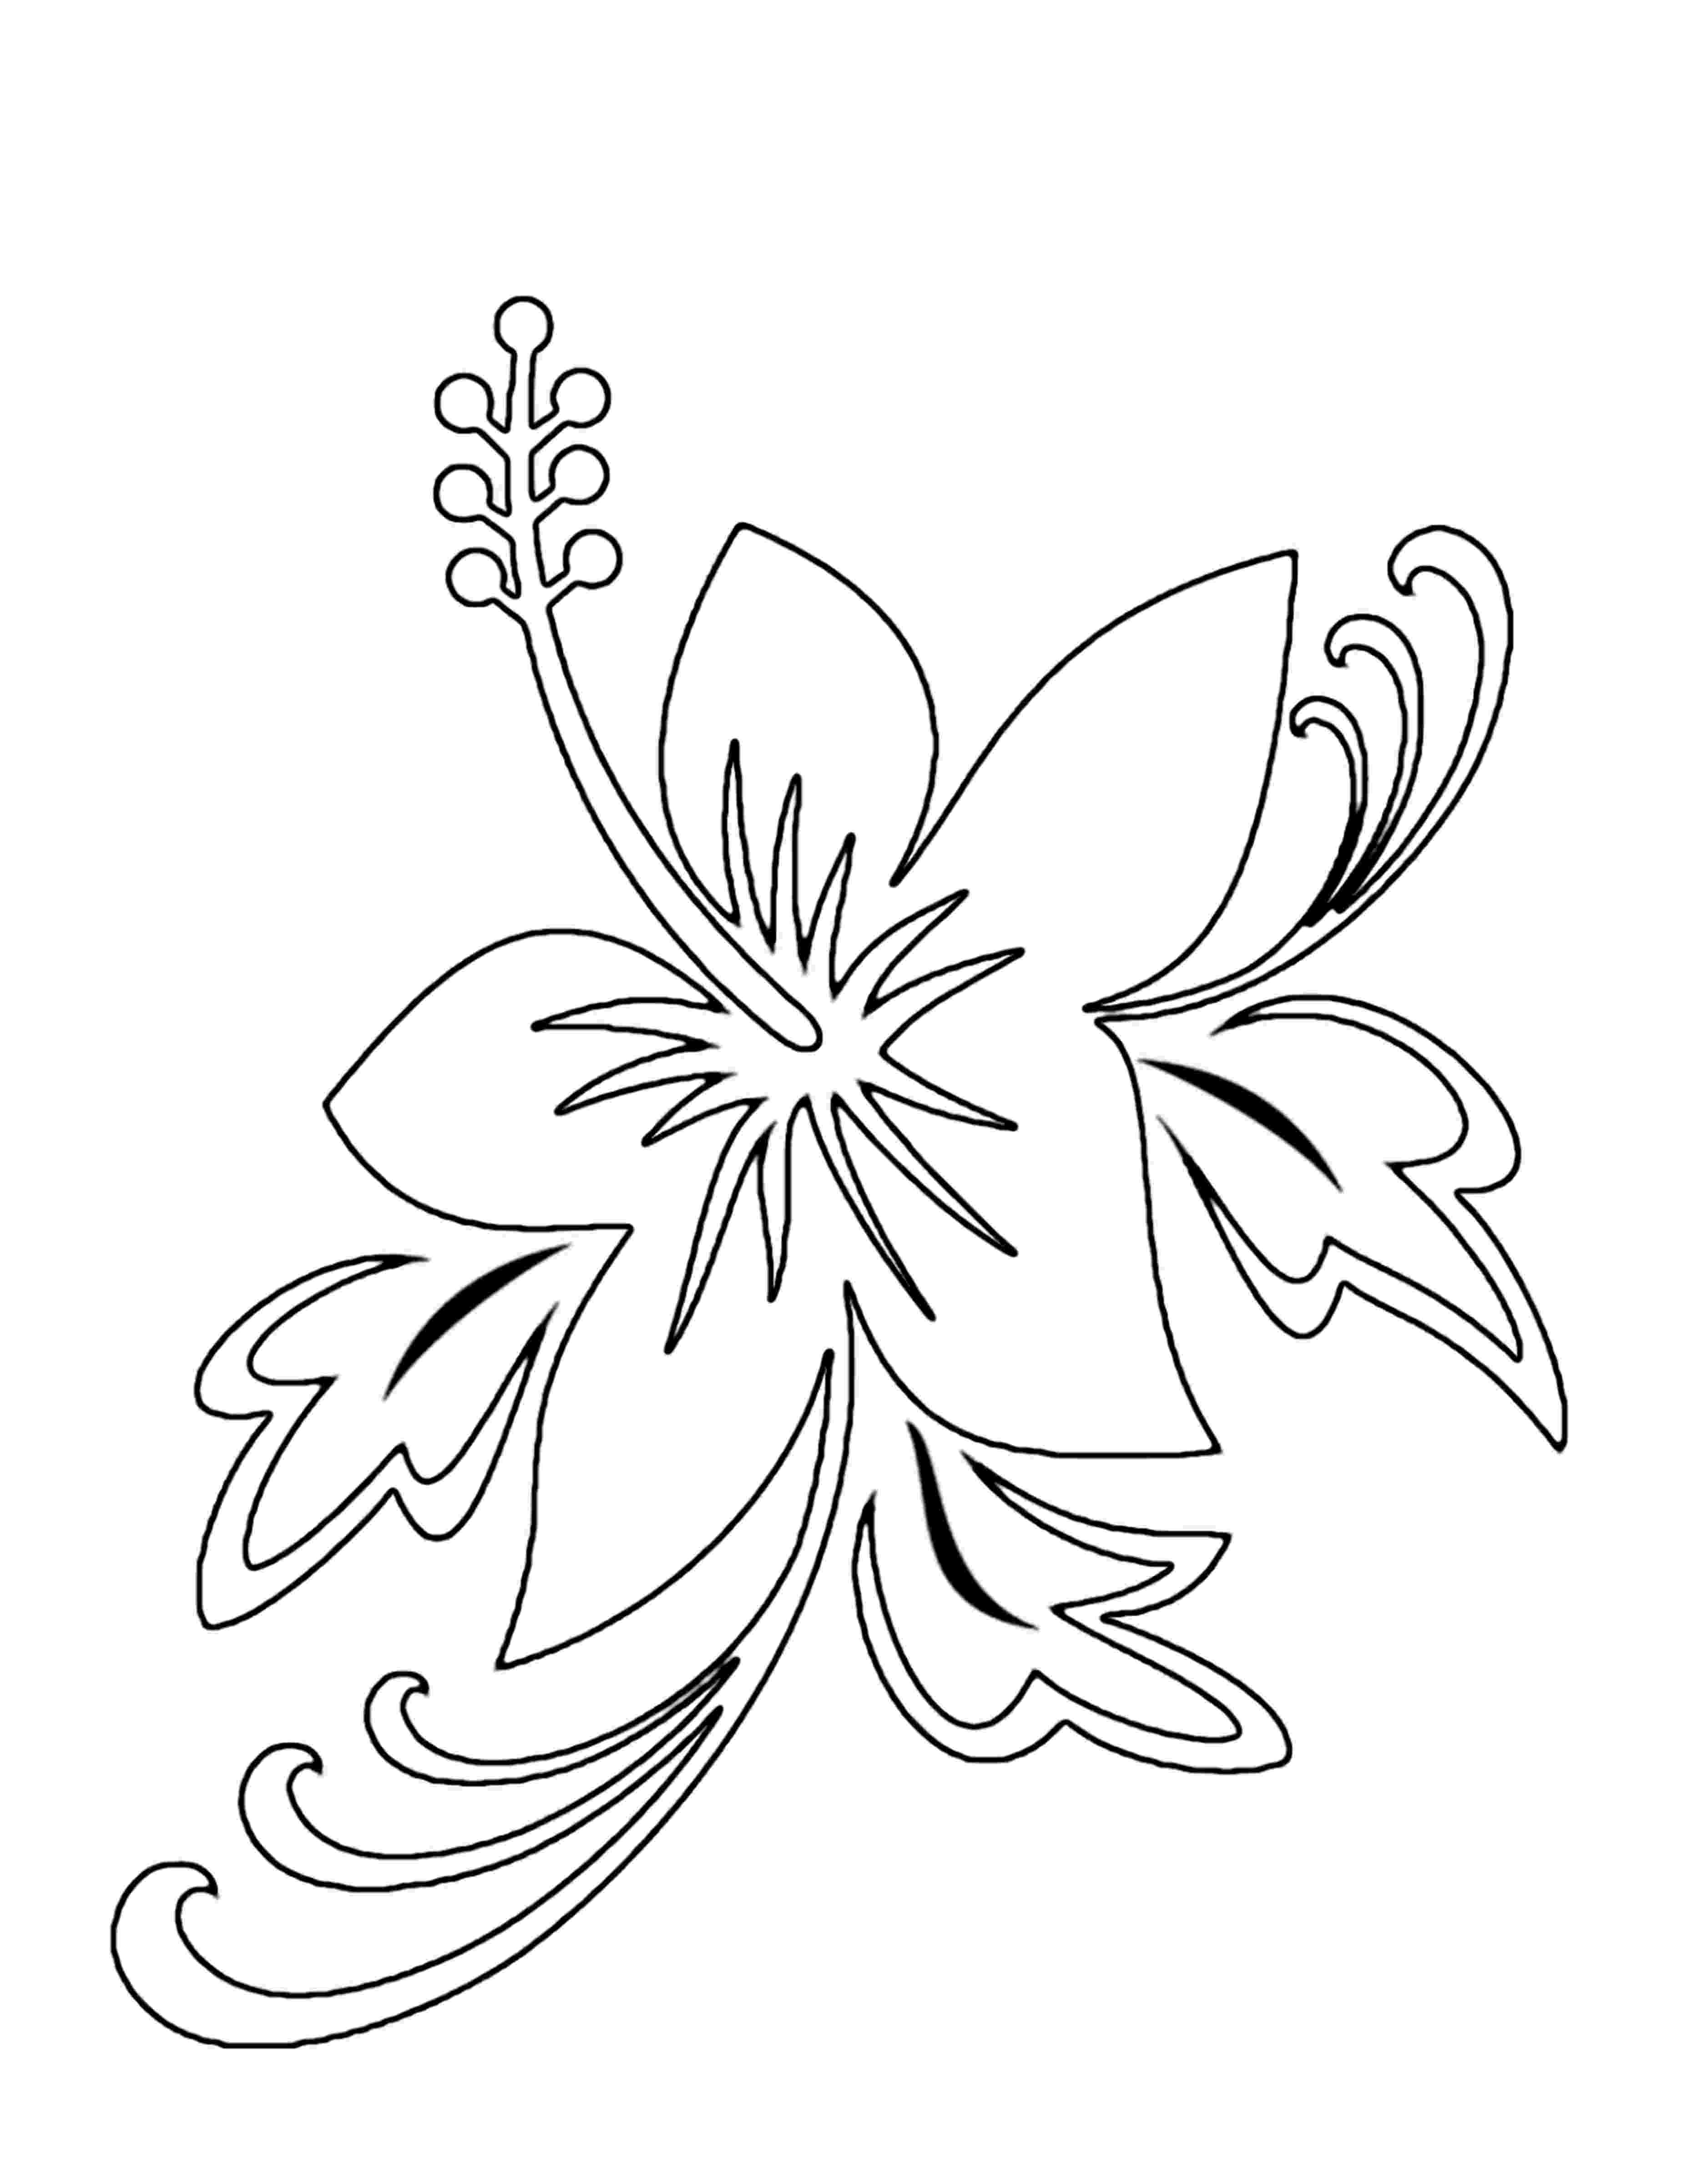 coloring page of flower flower pictures to print of page flower coloring